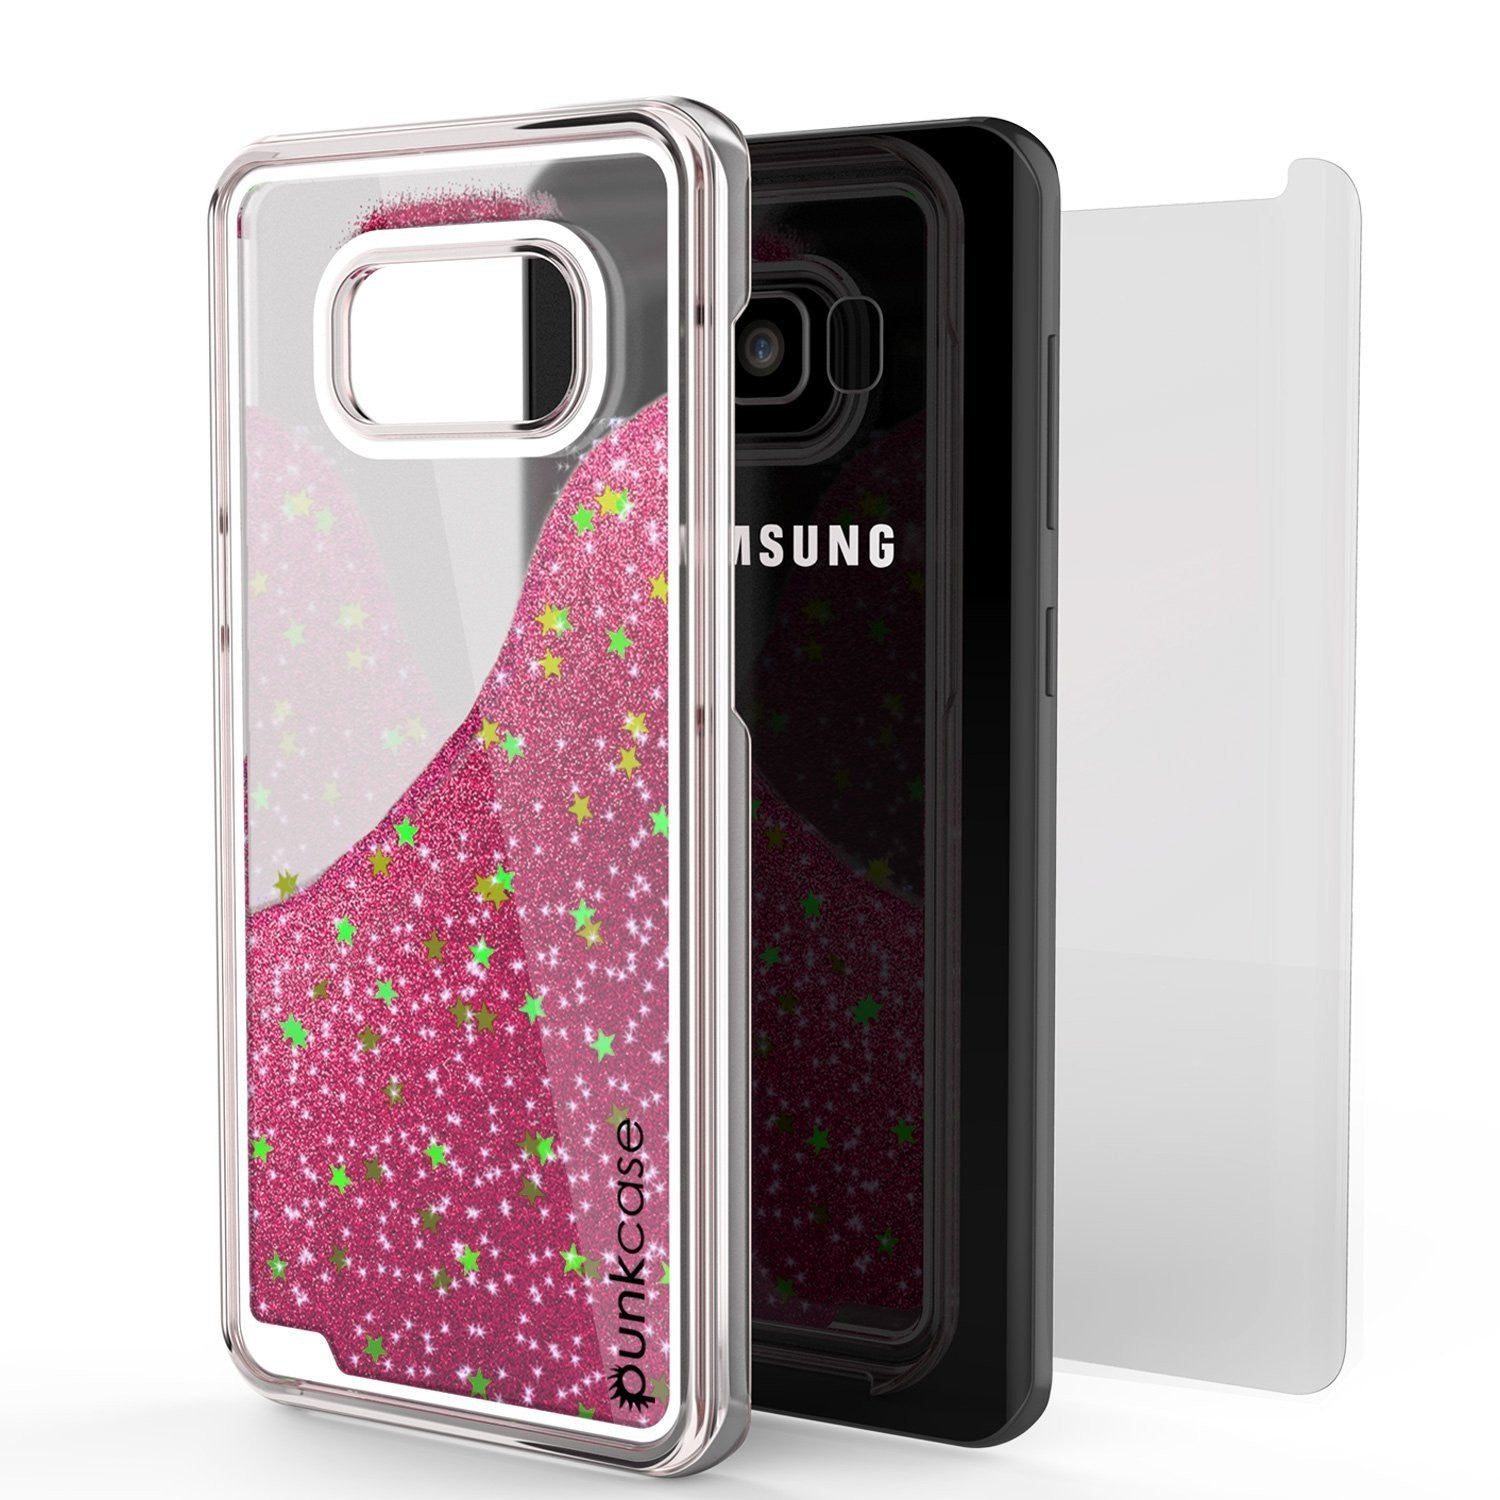 Galaxy S8 Case, Punkcase Liquid Pink Series Protective Dual Layer Floating Glitter Cover